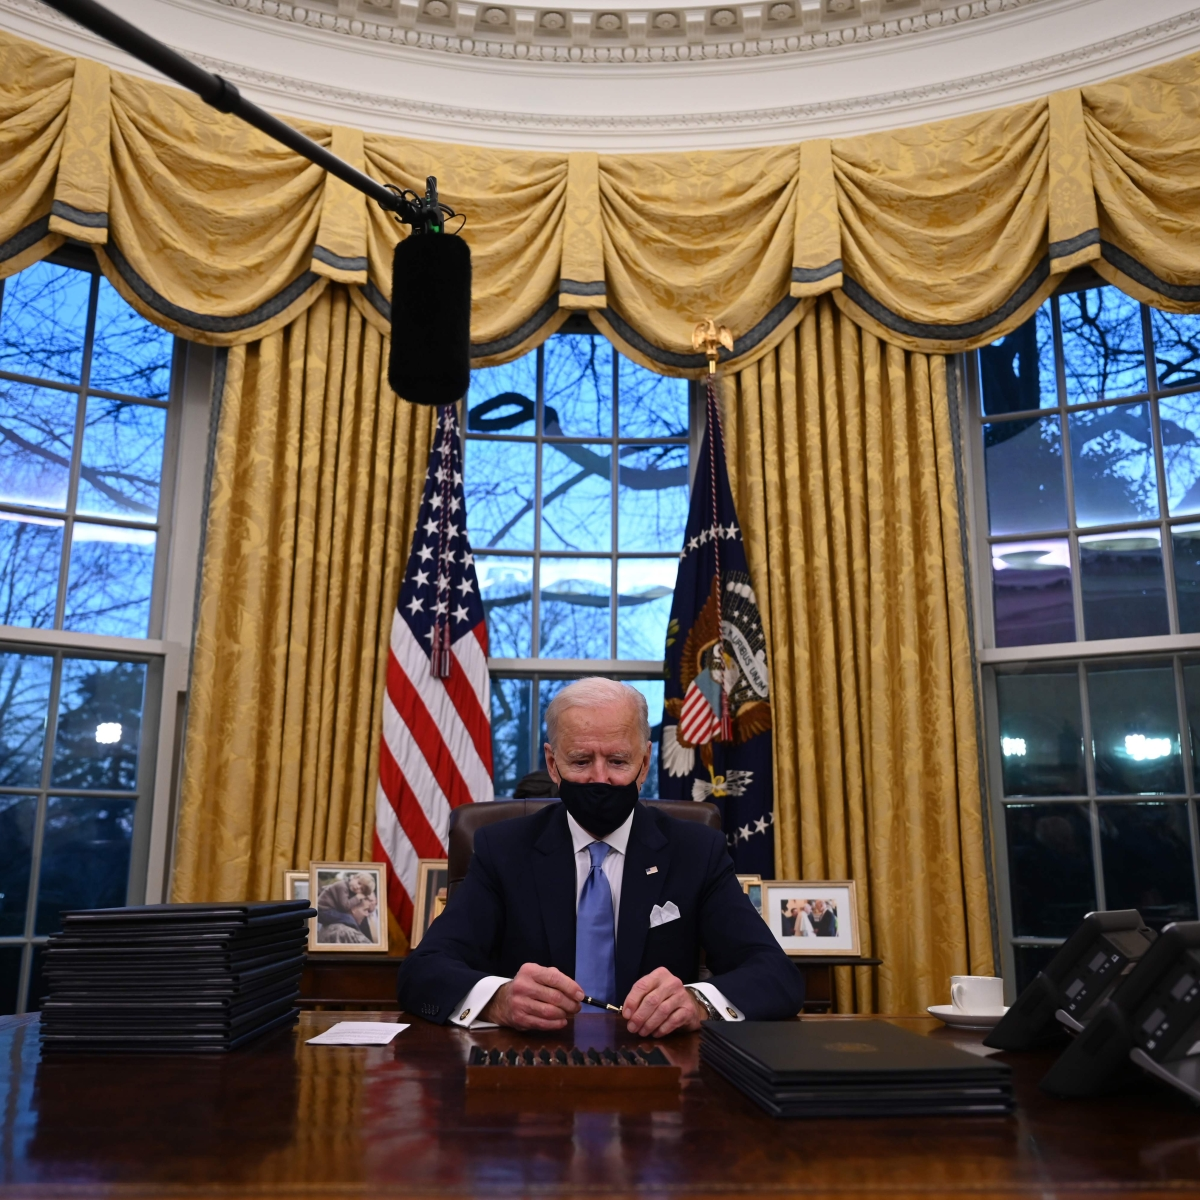 President Biden reverses Trump-era policy that barred transgenders from serving in military